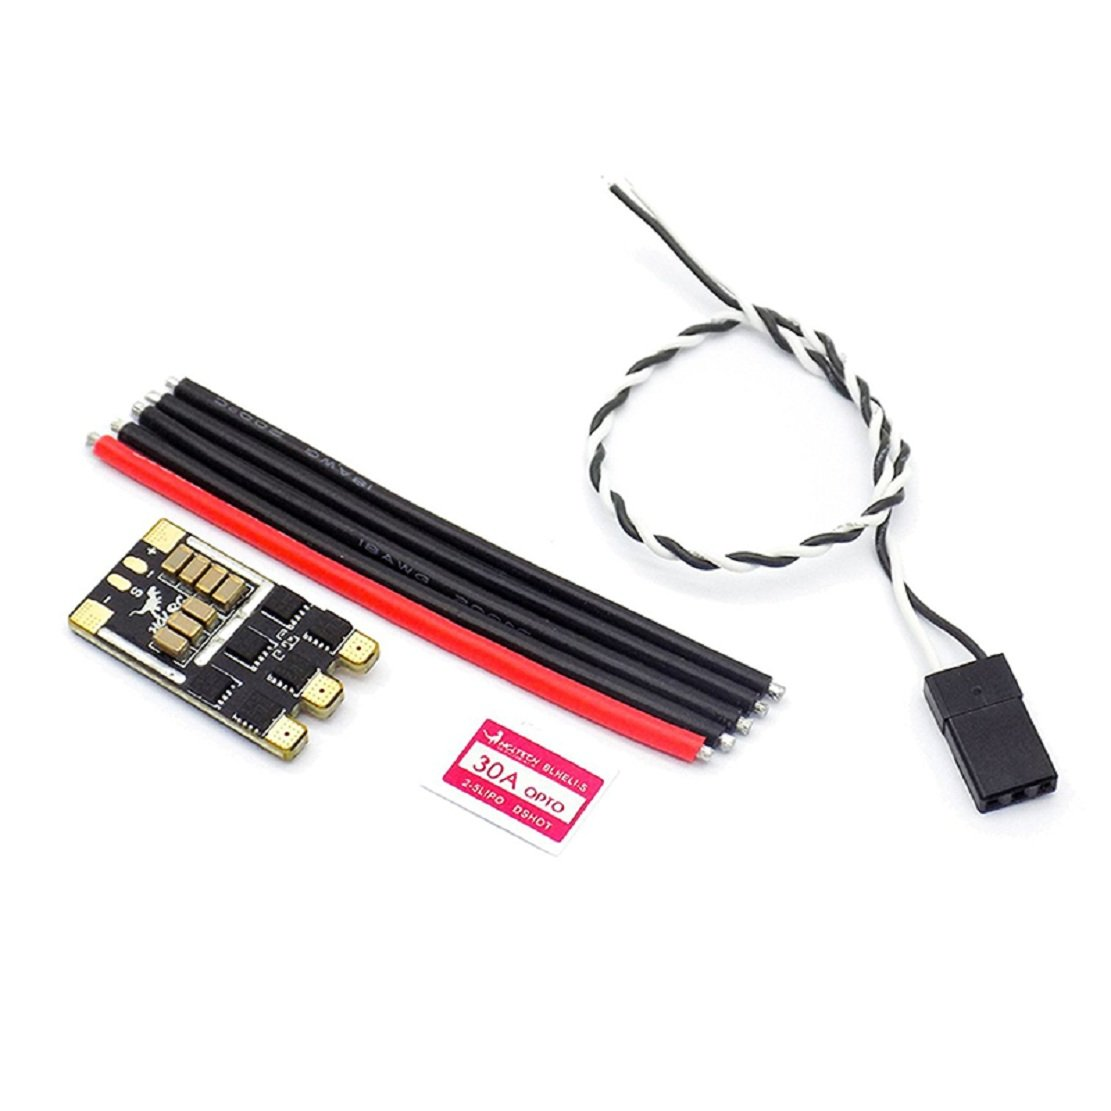 HGLRC Blheli/_S 30A ESC 2-5S LiPo Battery Input Dshot600 Brushless Motor Electronic Speed Controller for FPV Multicopter Quadcopter 4PCS